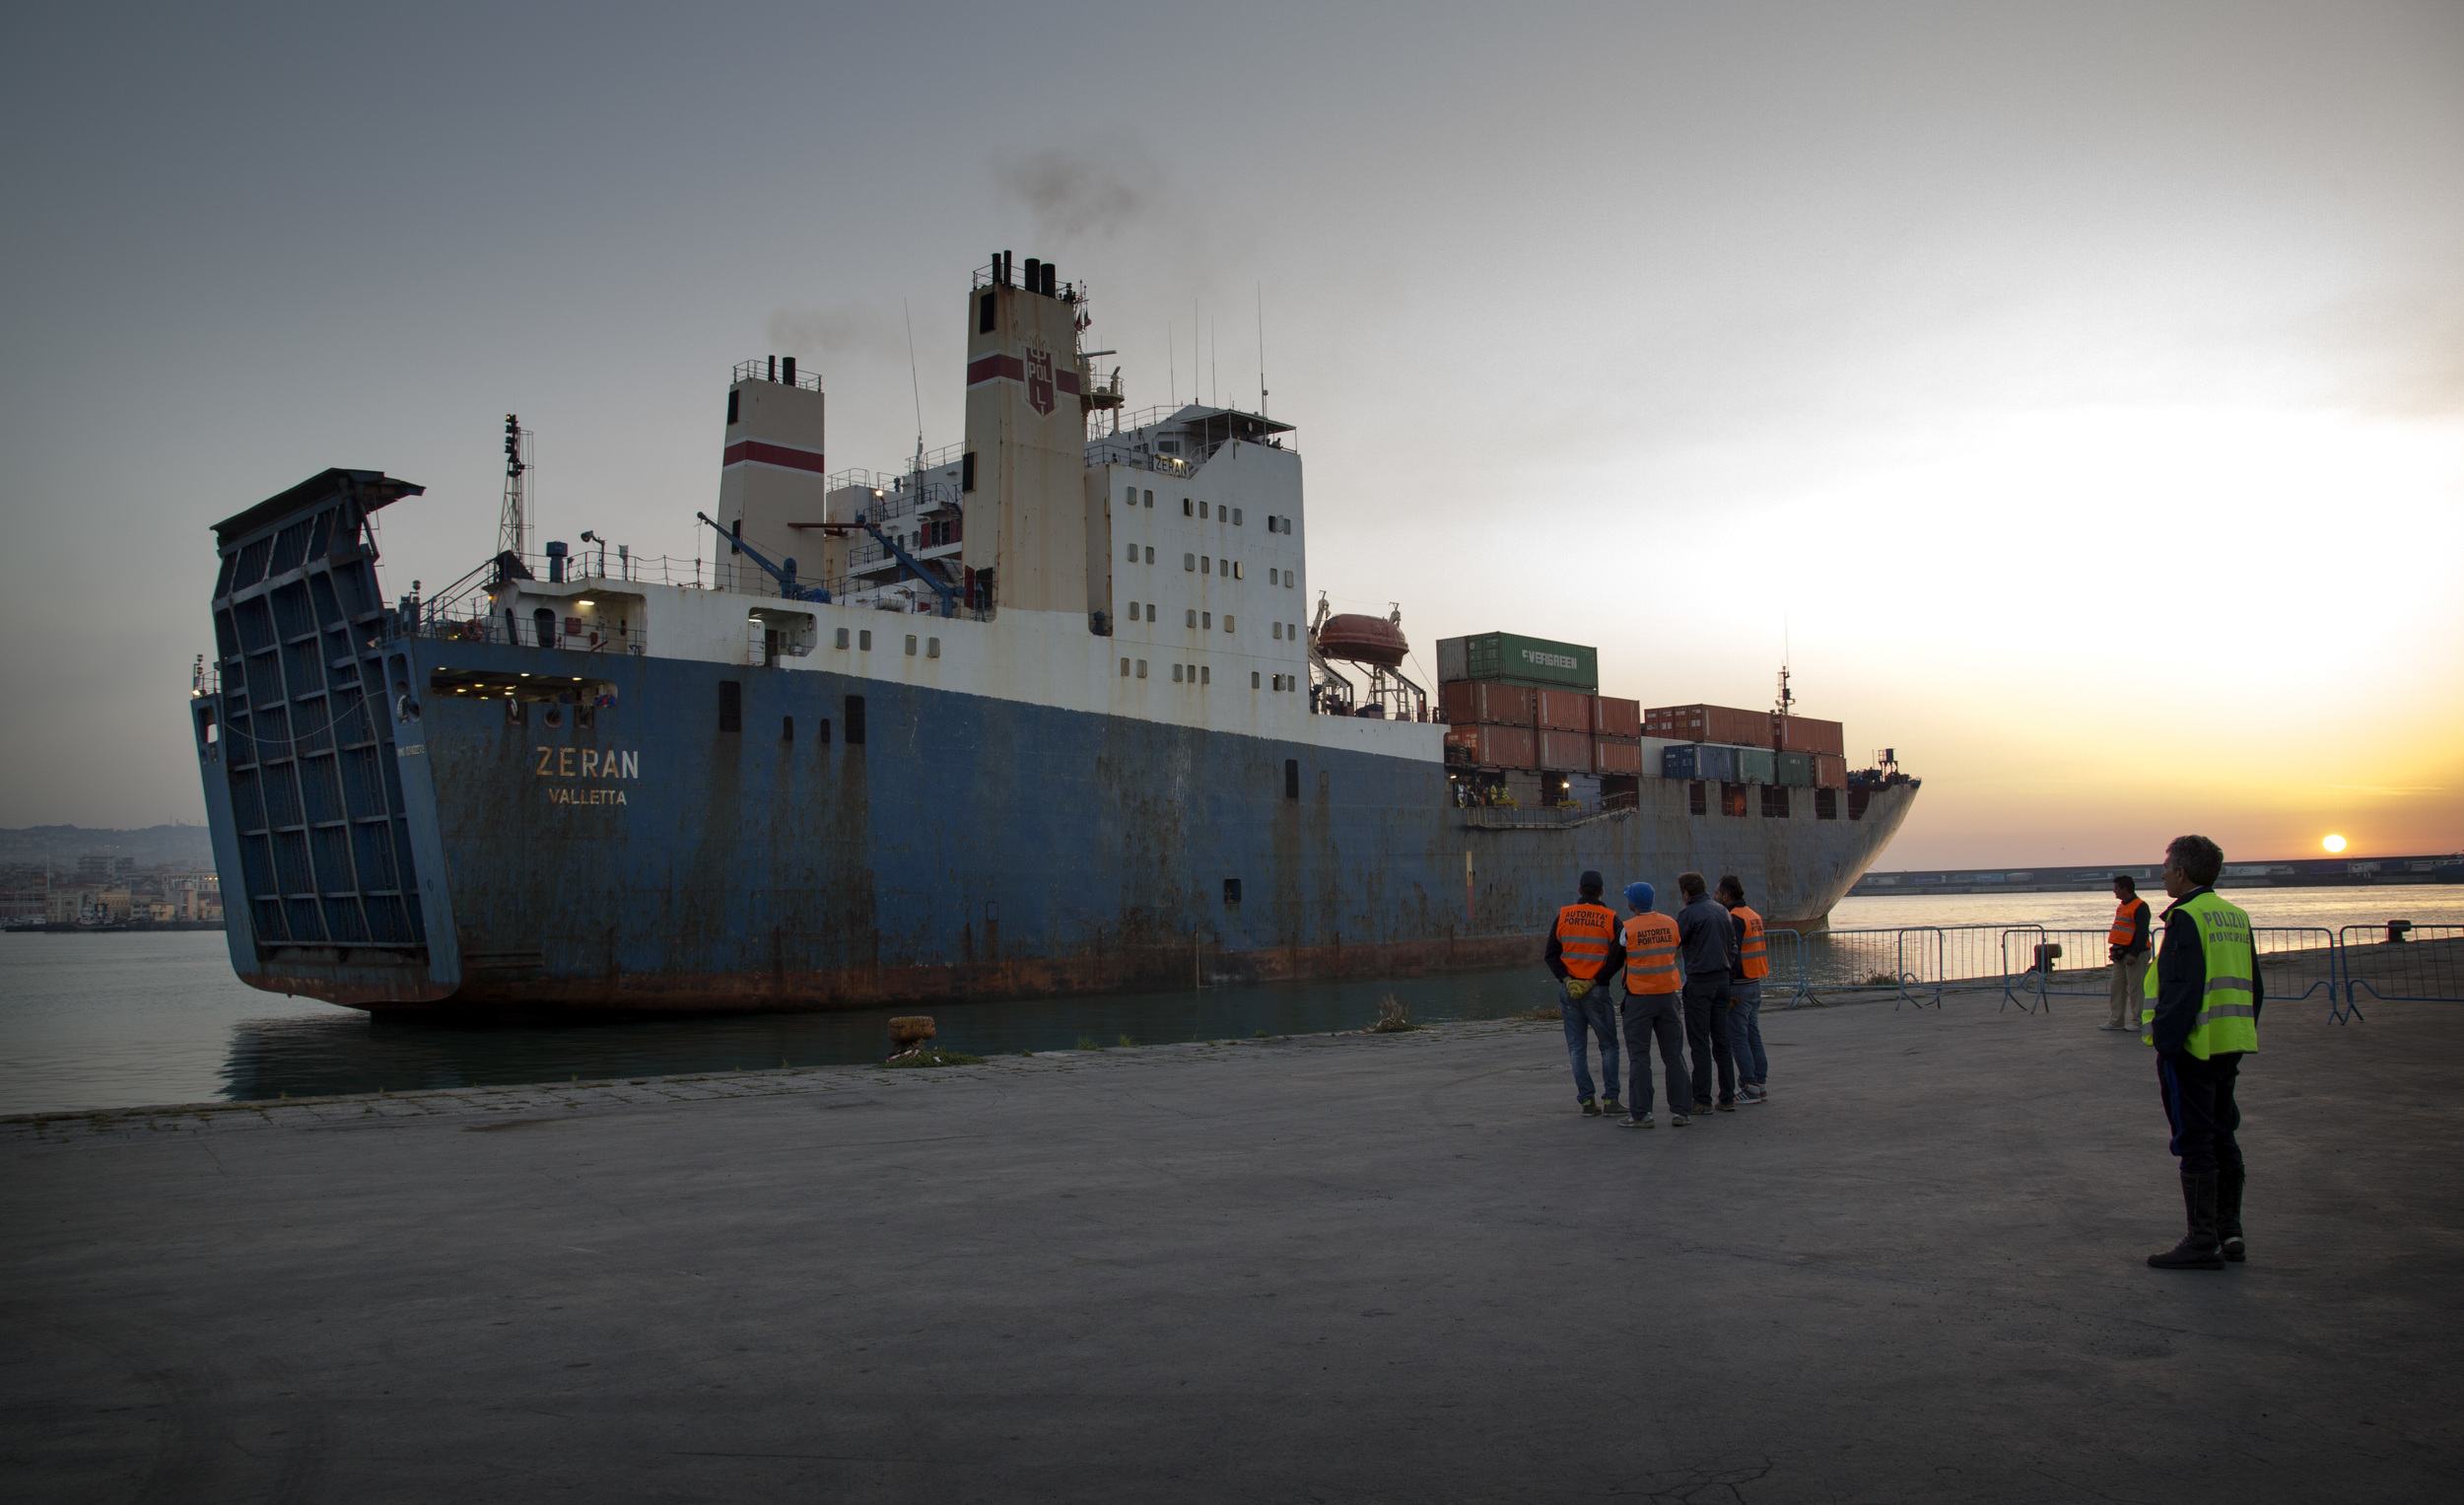 Maltese cargo ship Zeran brings 194 migrants to safety at the port of Catania, Sicily, on 5 May